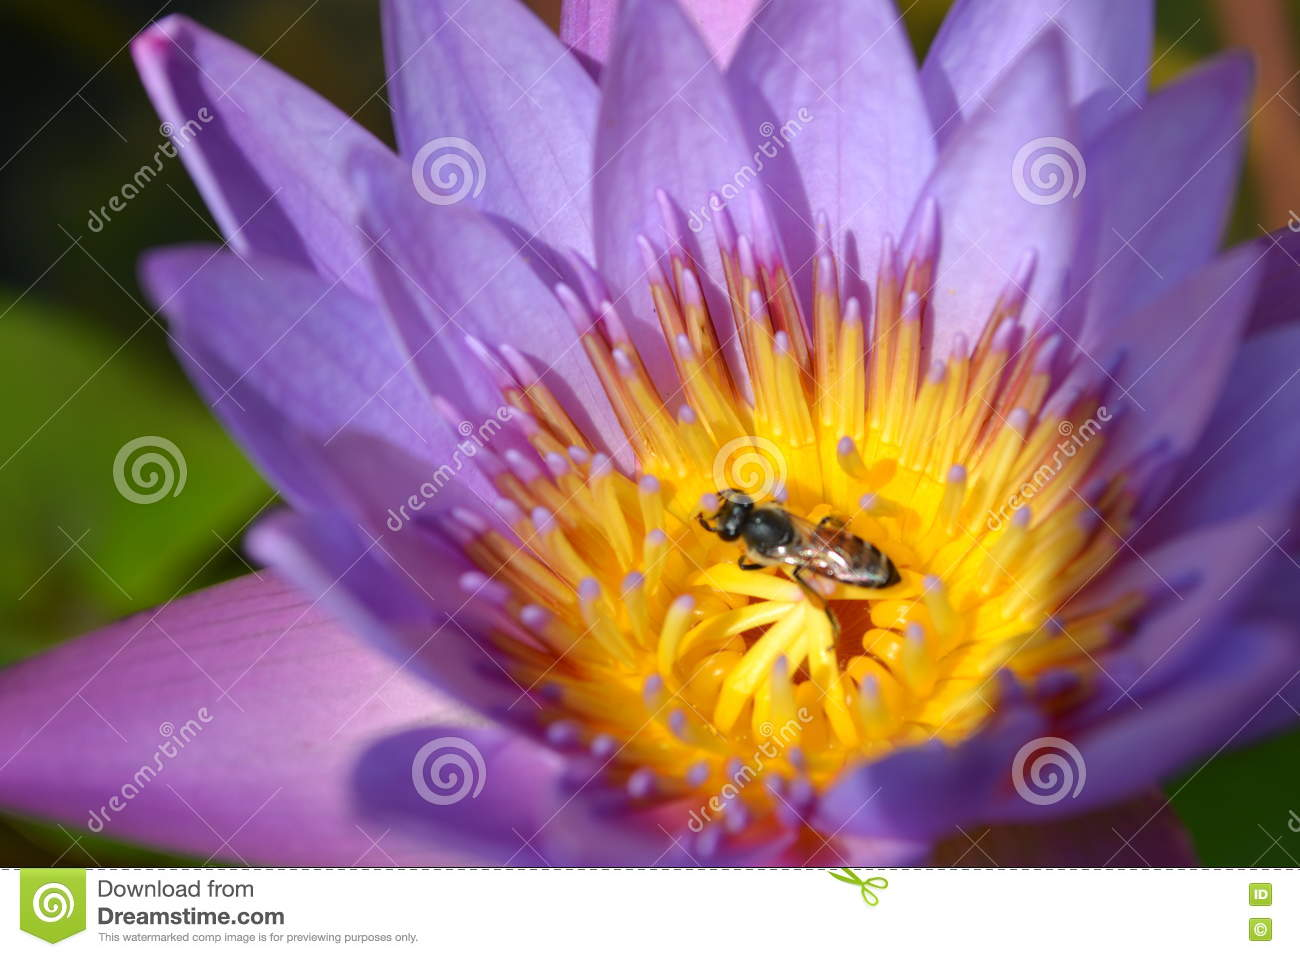 Lotus flower stock photo image of ubon floral beautiful 79635402 download lotus flower stock photo image of ubon floral beautiful 79635402 izmirmasajfo